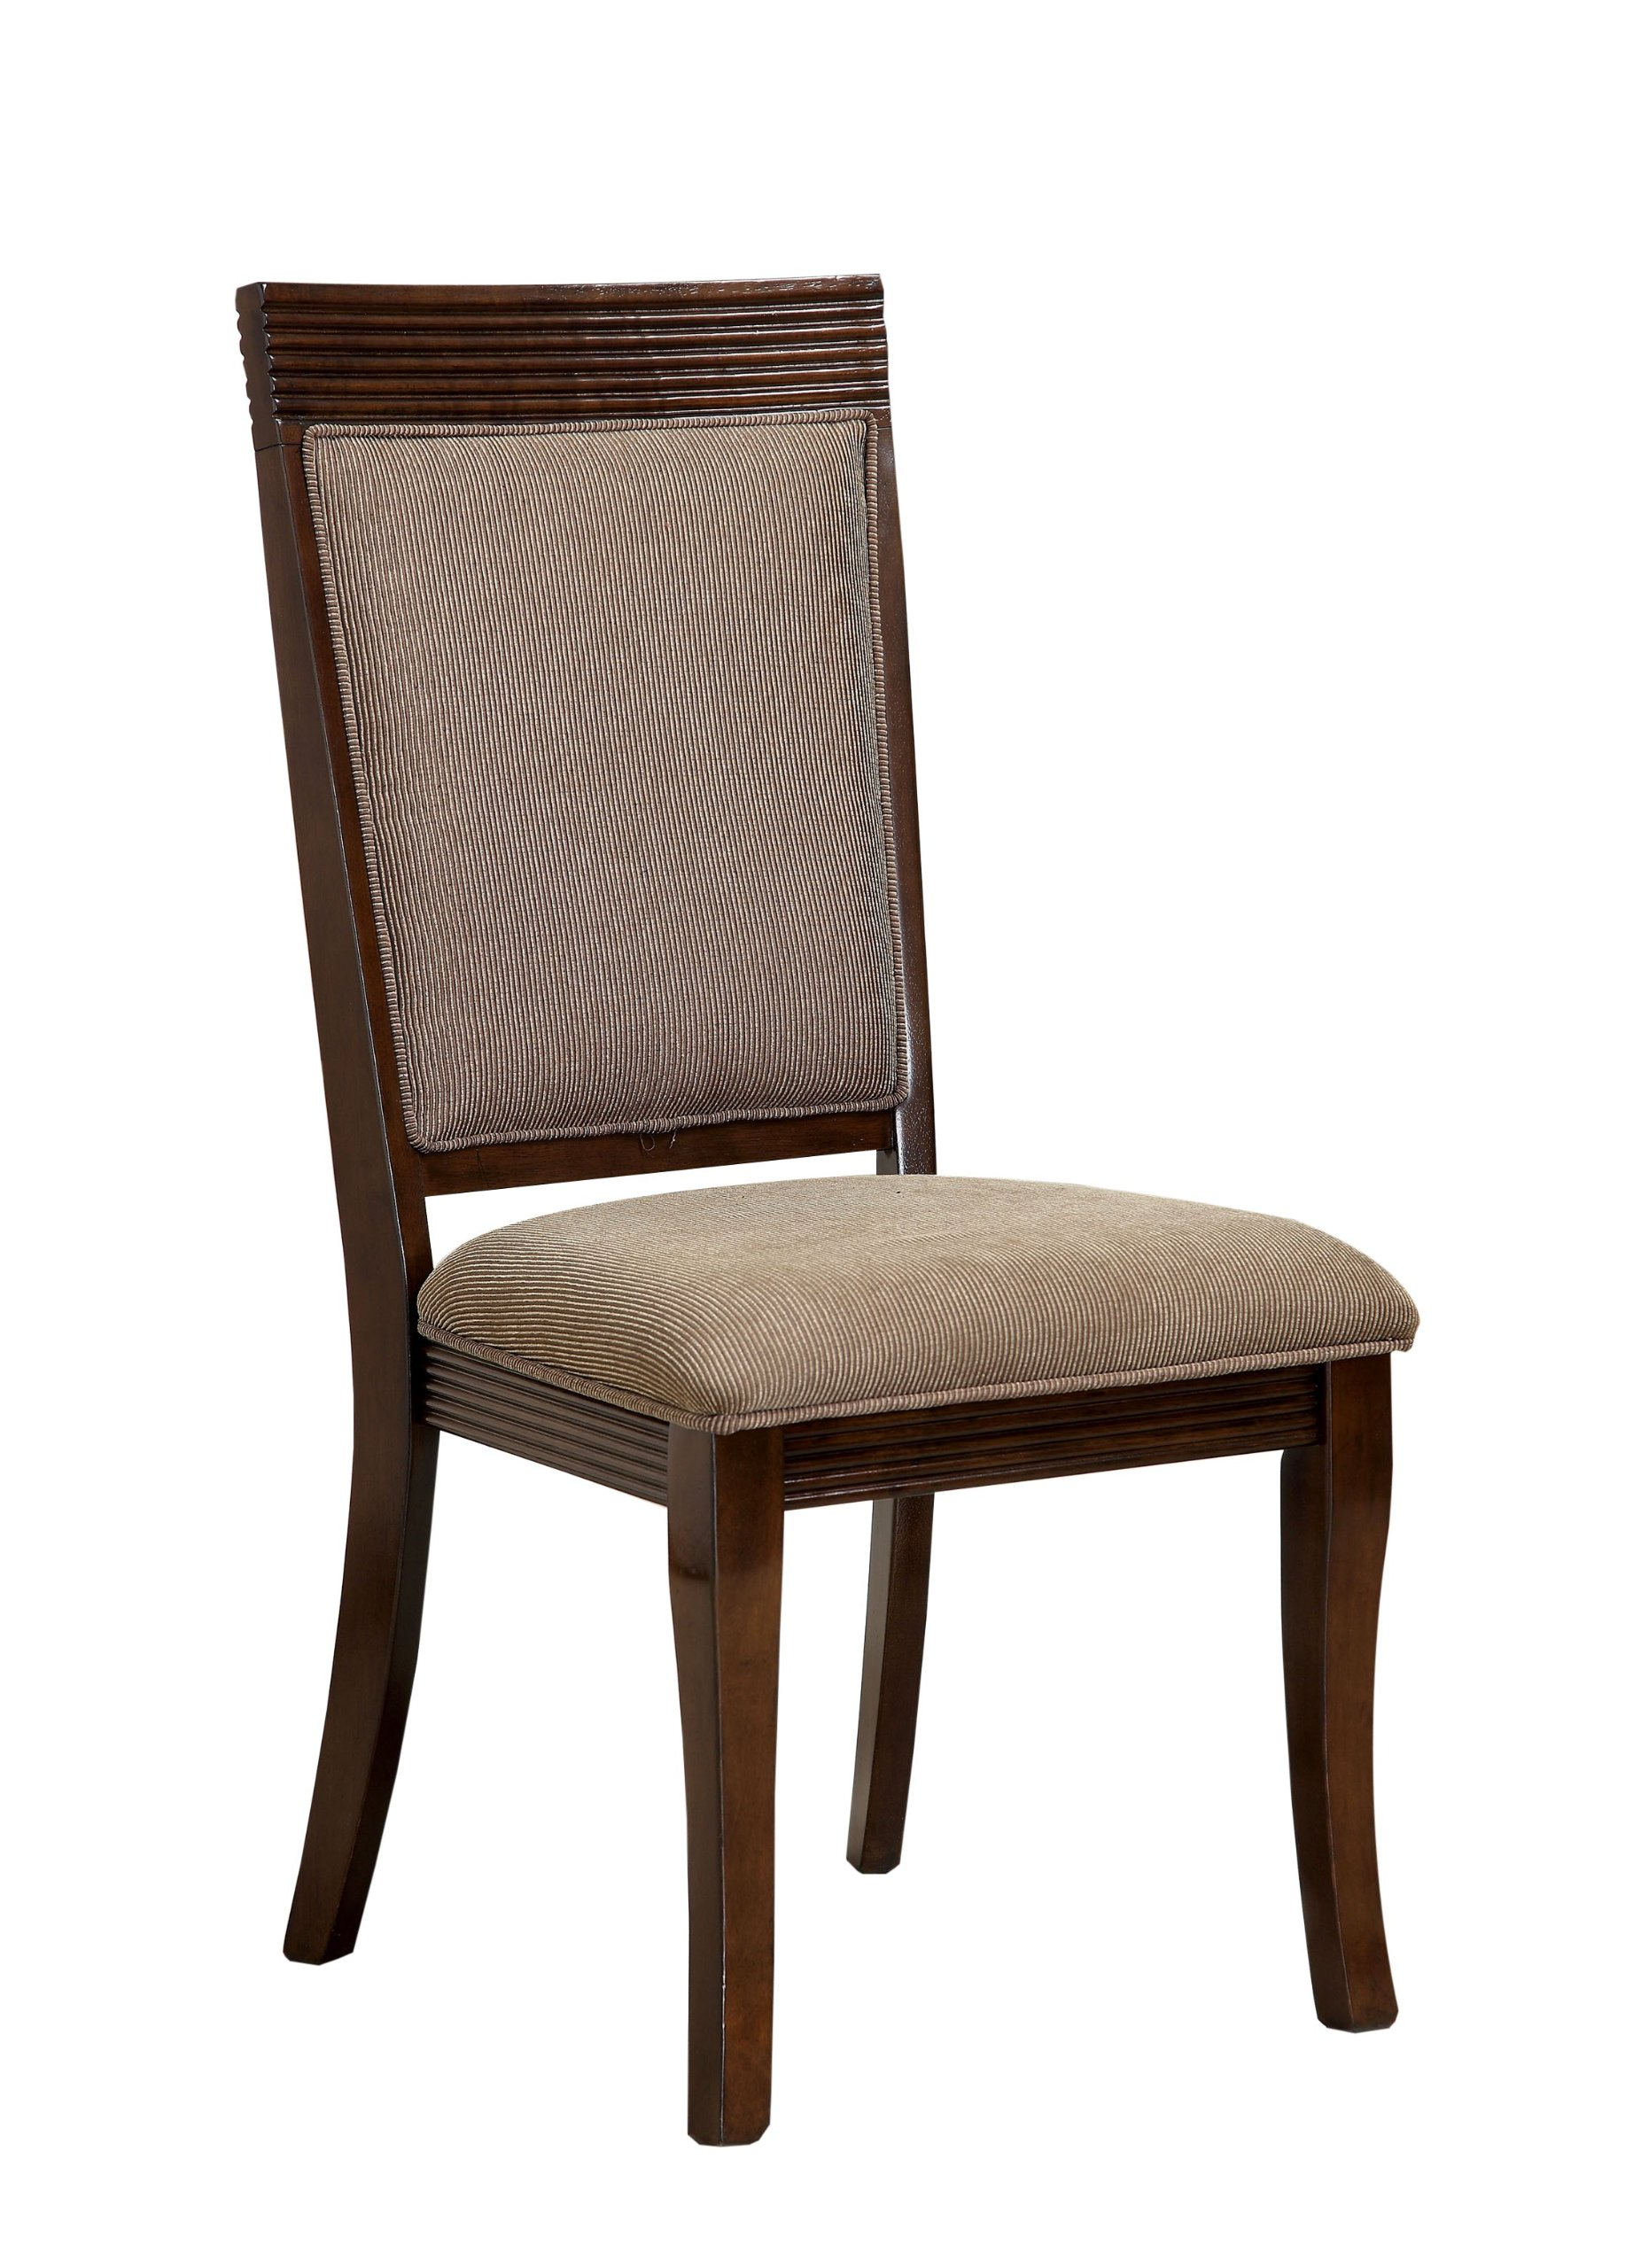 Furniture of America Aiken Formal Padded Fabric Side Chair, Walnut Finish, Set of 2